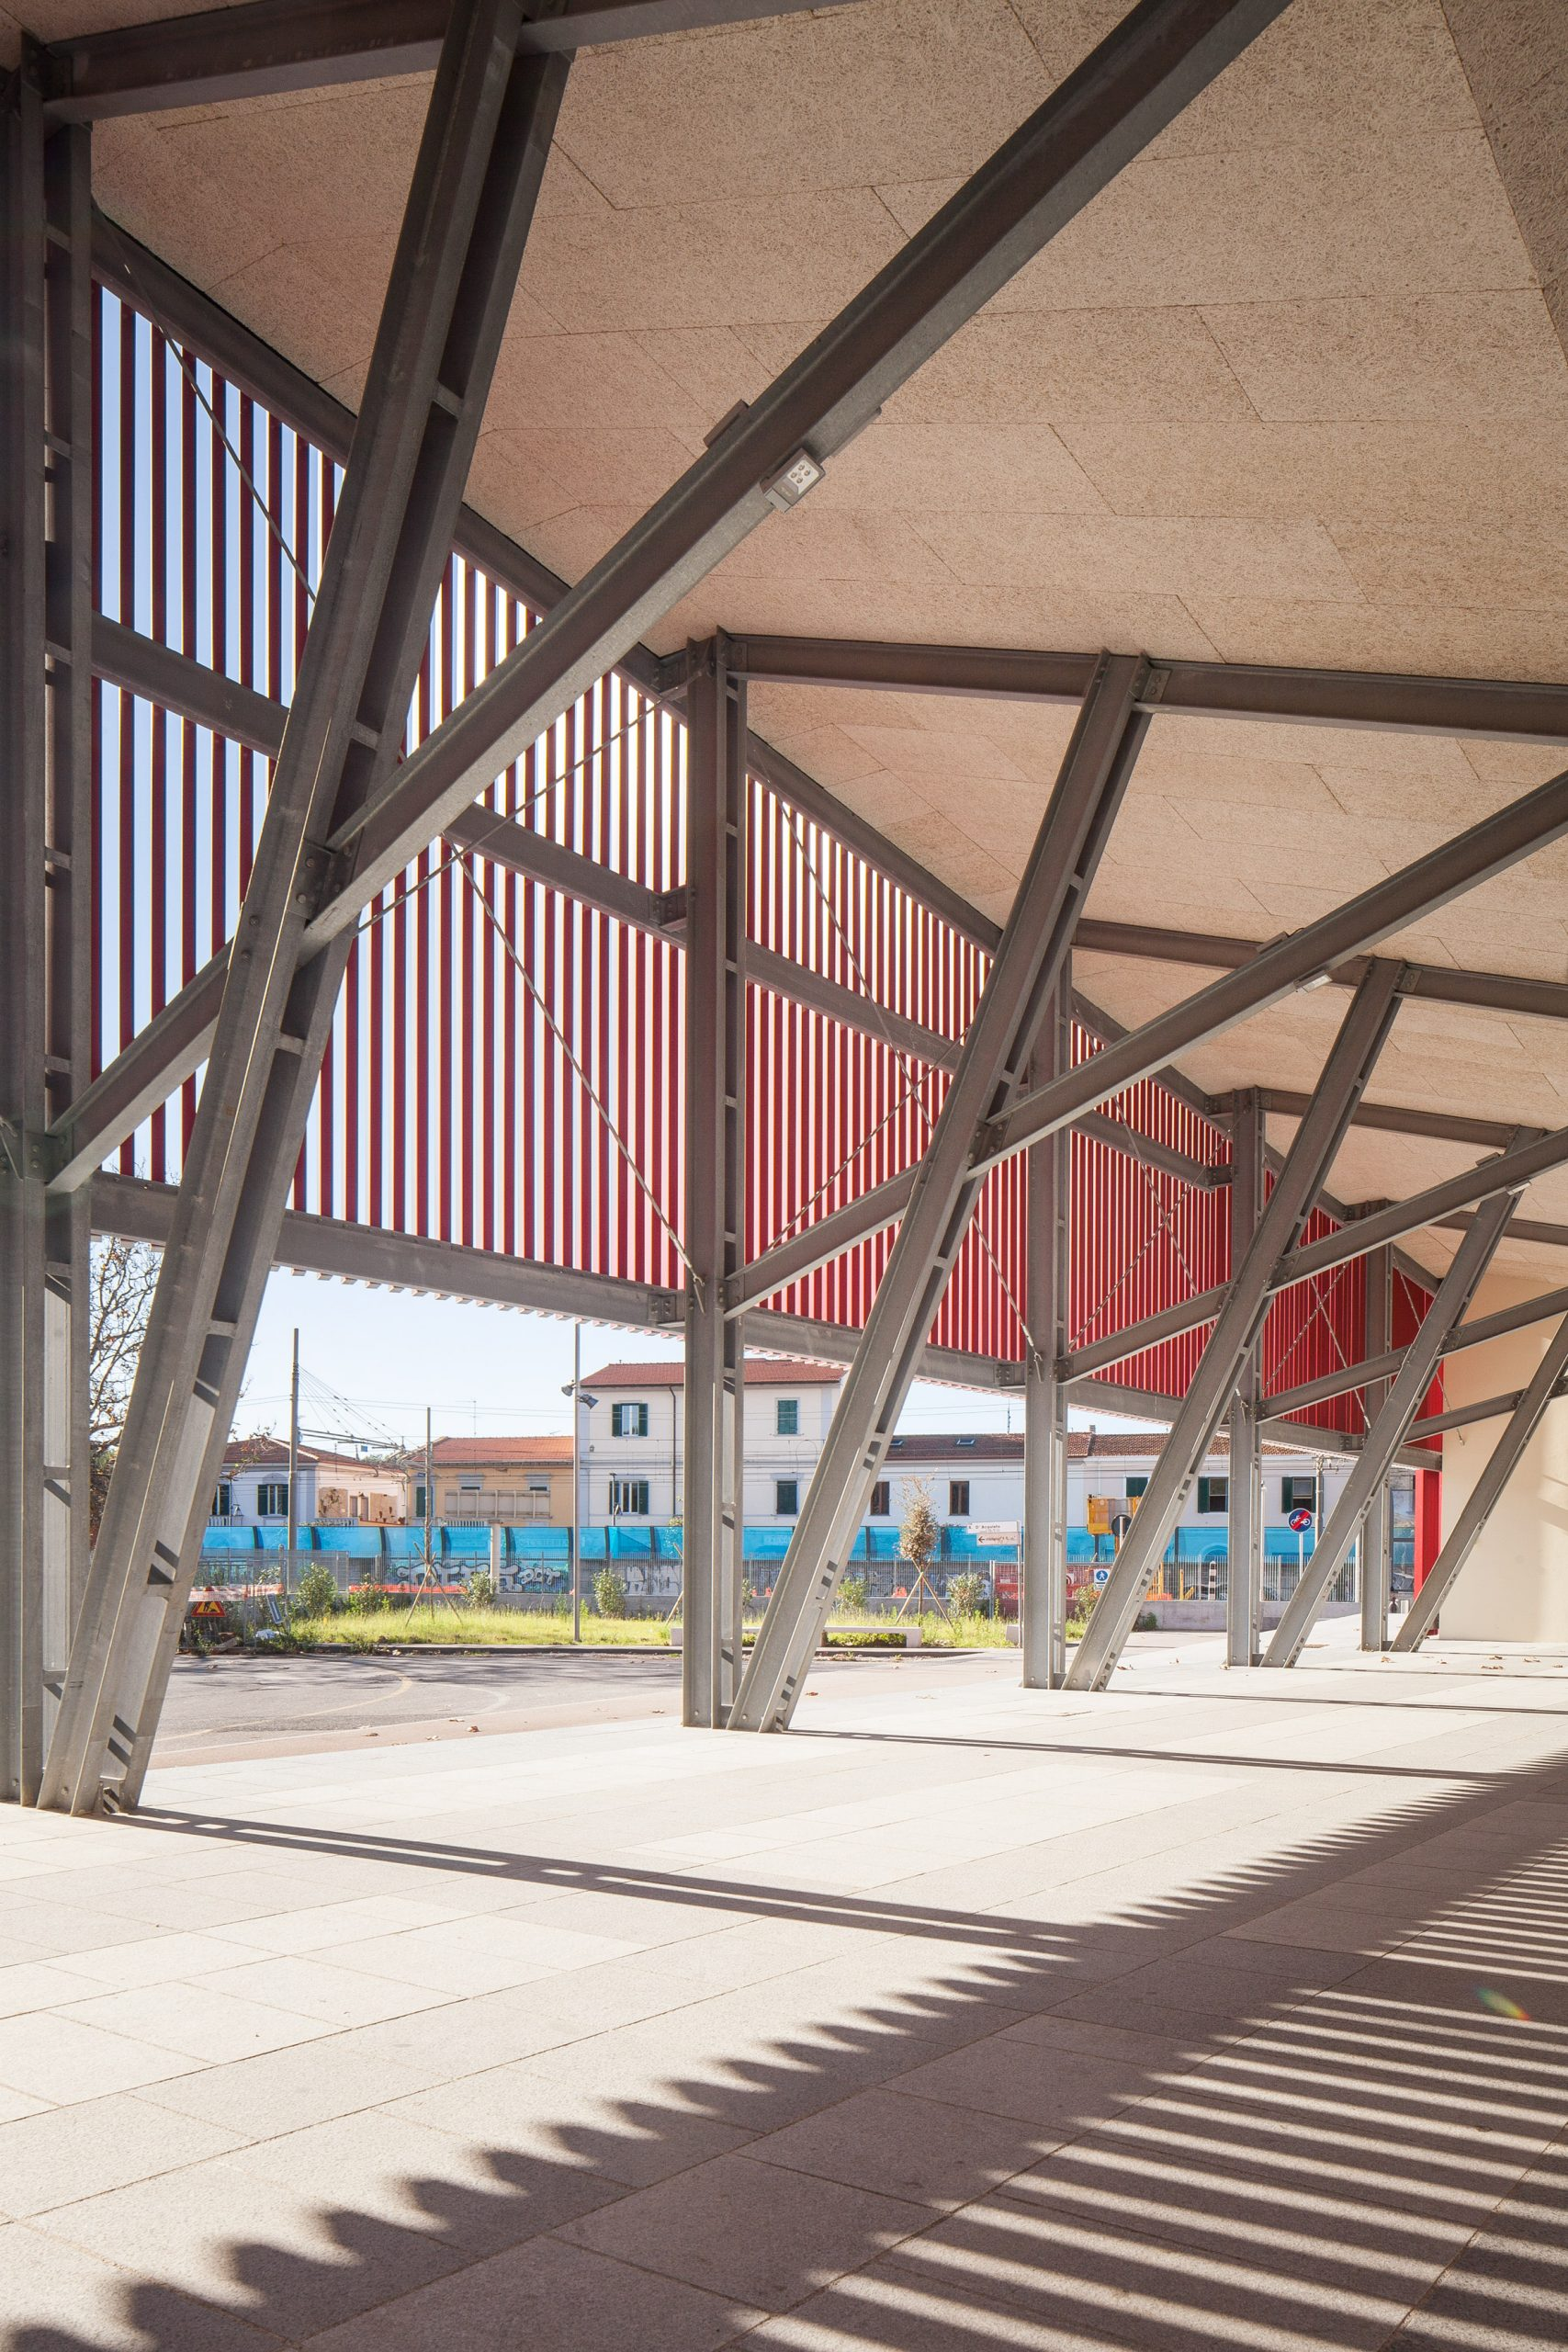 The exposed metal structure of a pavilion